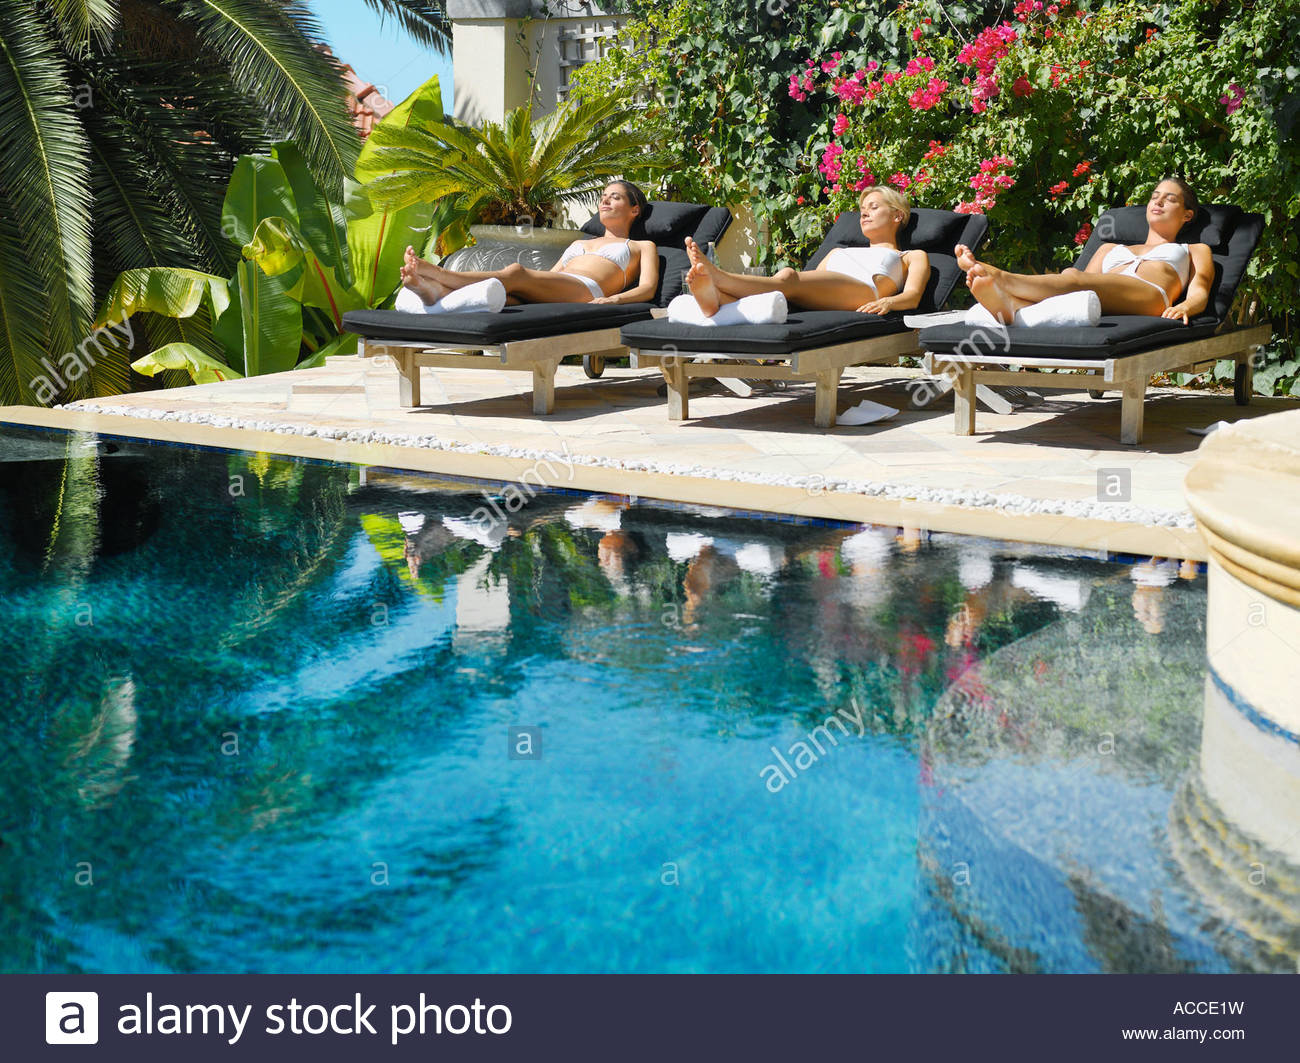 Three Women Sun Tanning In Lounge Chairs By A Pool   Stock Image